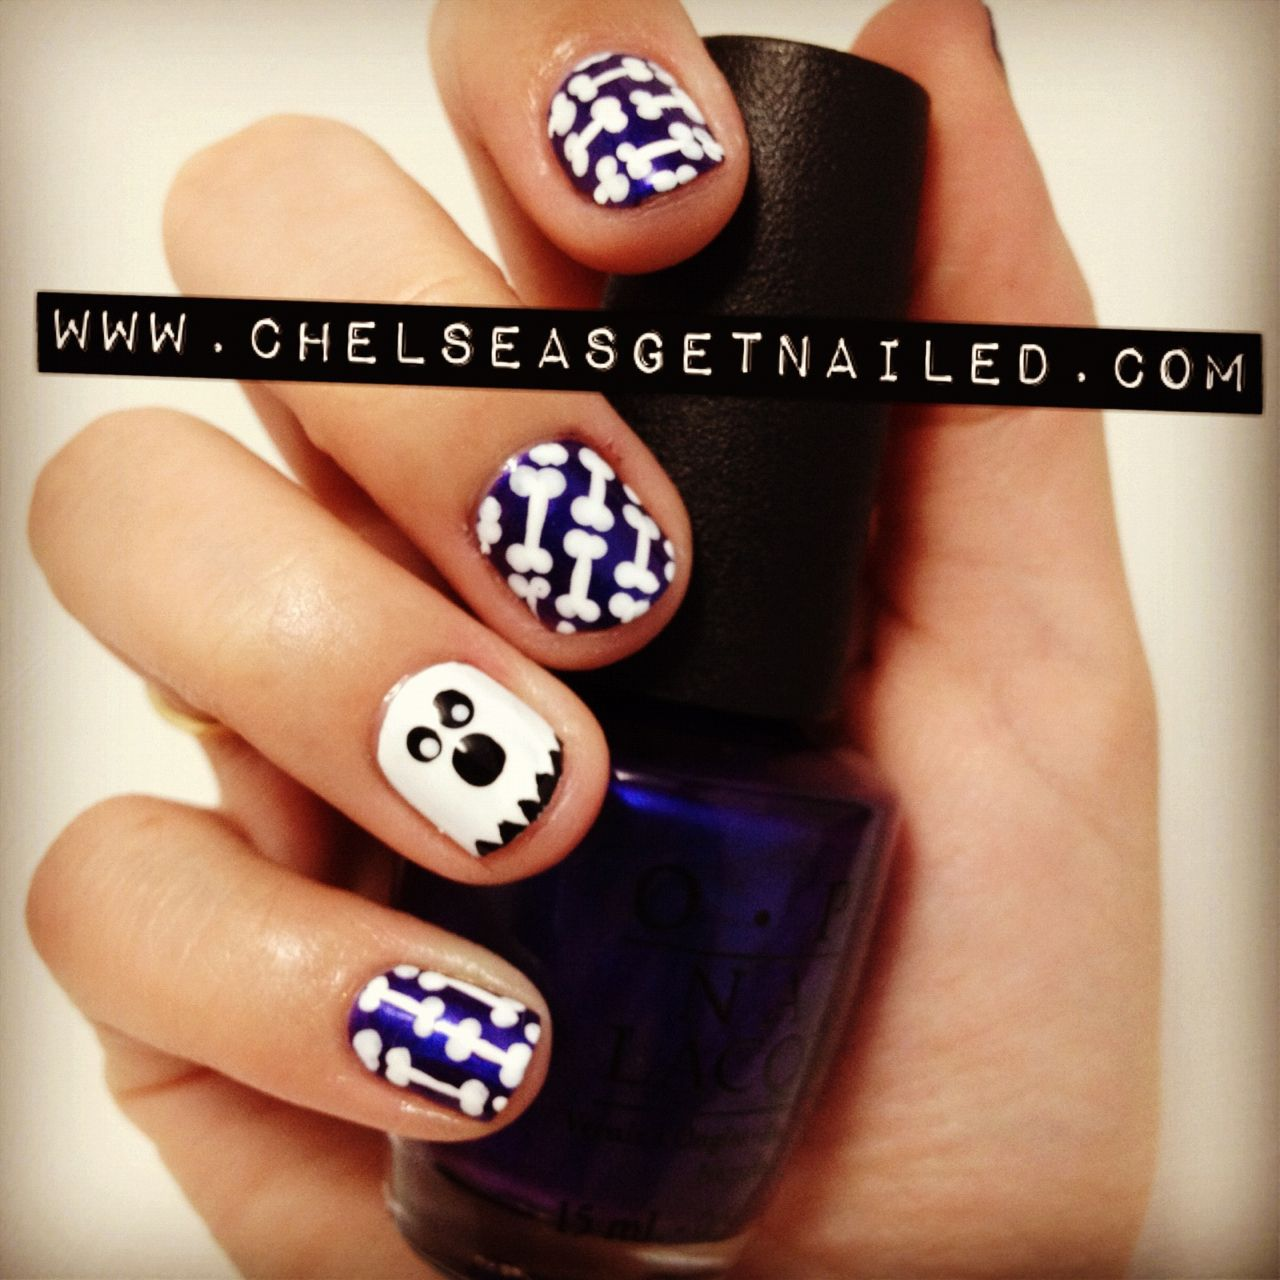 Chelsea Queen | Ghost & Bones | Halloween nails, Fun nails ...